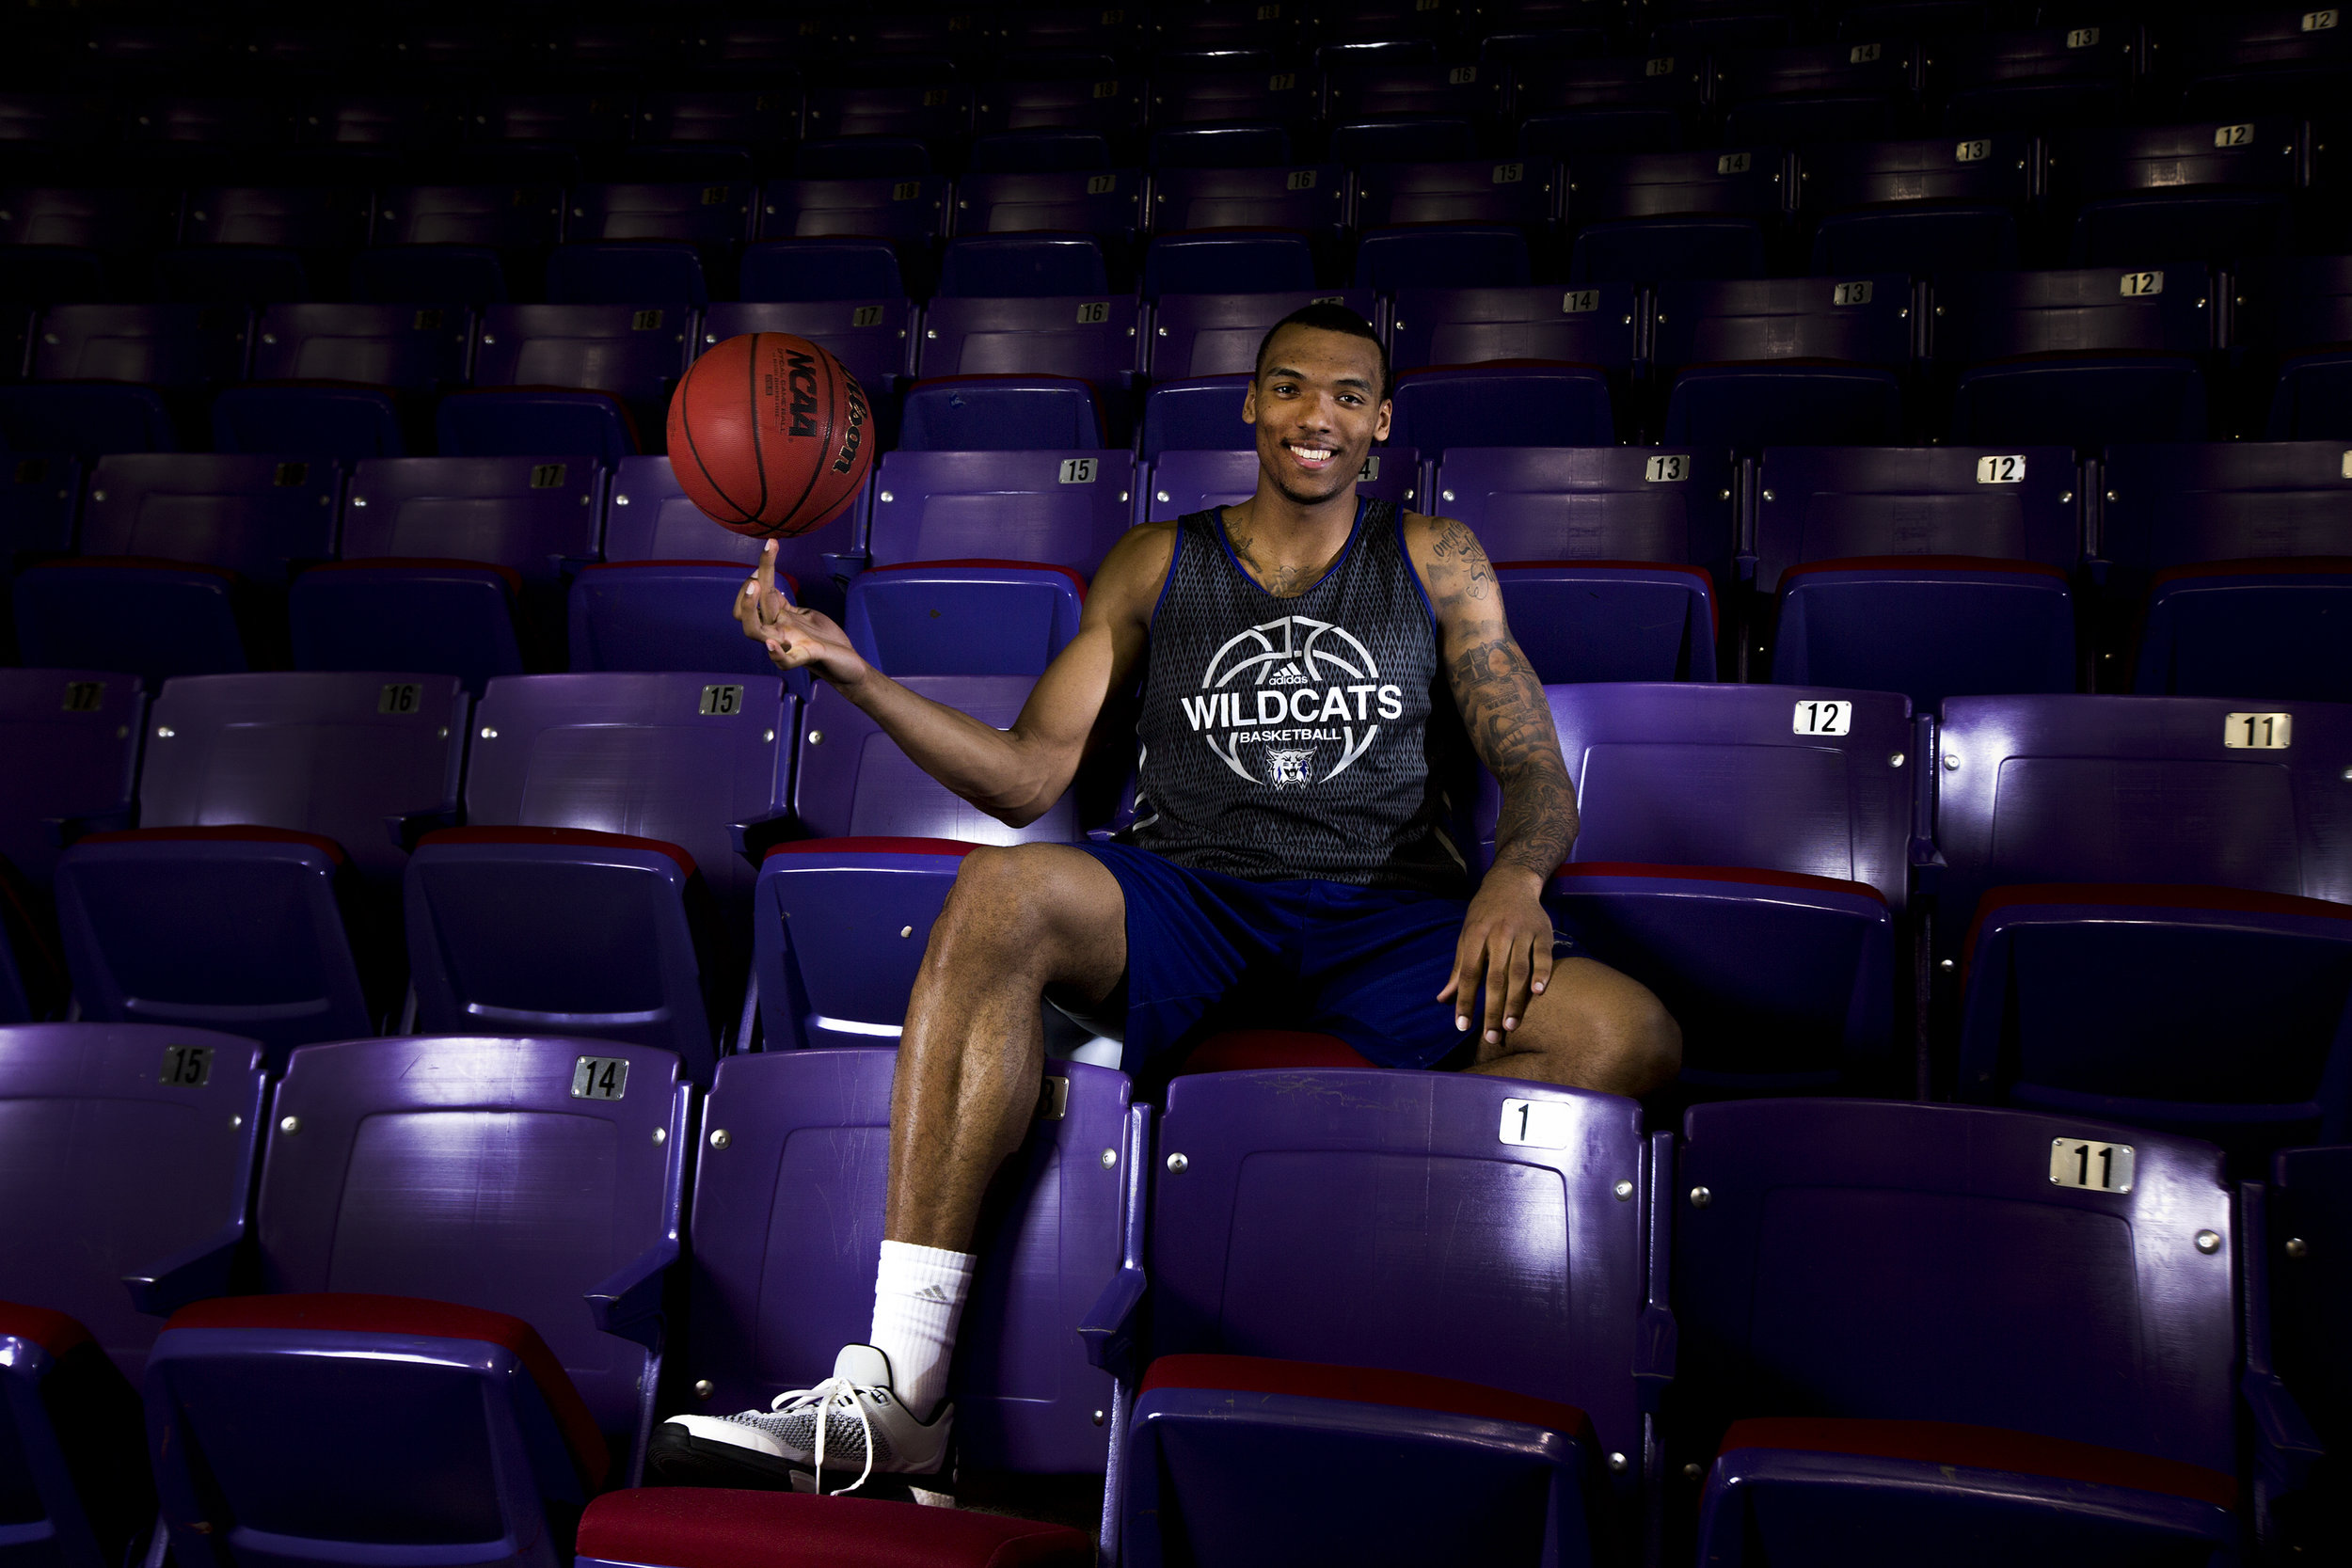 Halfway through the 2015-16 season Weber State's Joel Bolomboy is only one game away from breaking the Big Sky's all-time rebounding record, a record that has been held since the 1970's by Idaho State's Steve Hayes. NBA scouts have taken notice of the seniors play as he is averaging an impressive 18.2 points and 13.6 rebounds per game for the Wildcats leading the team to an 13-5 overall record and 5-0 in conference play.